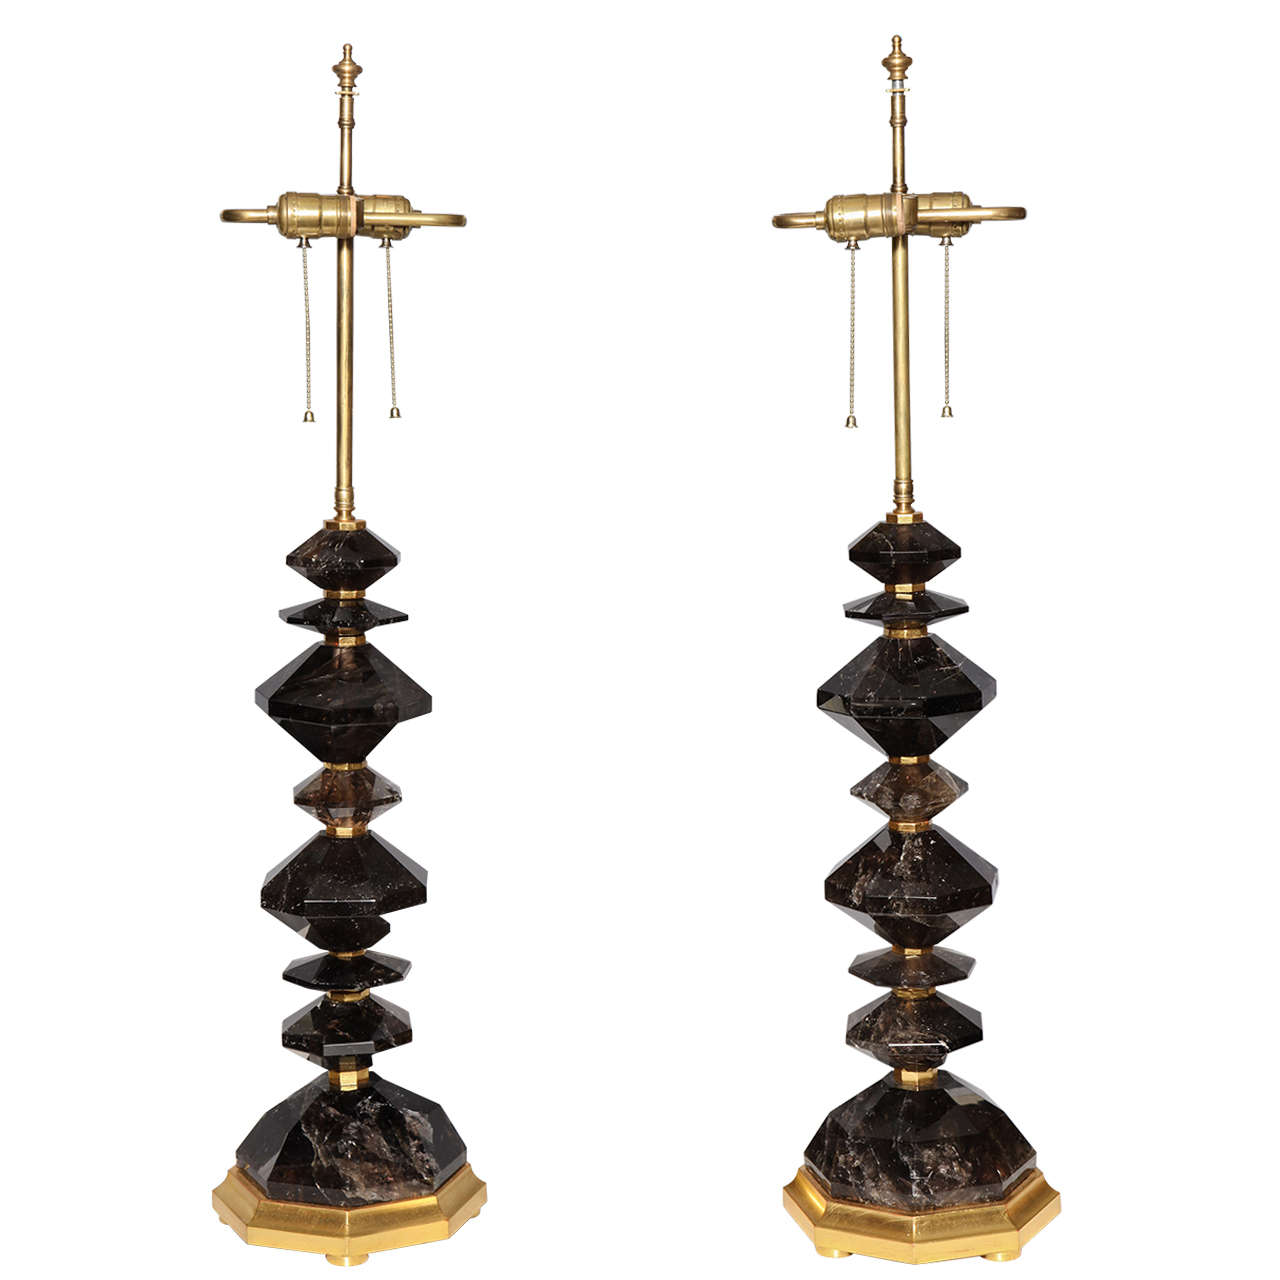 Fine Pair of Smoky Rock Crystal Quartz Table Lamps